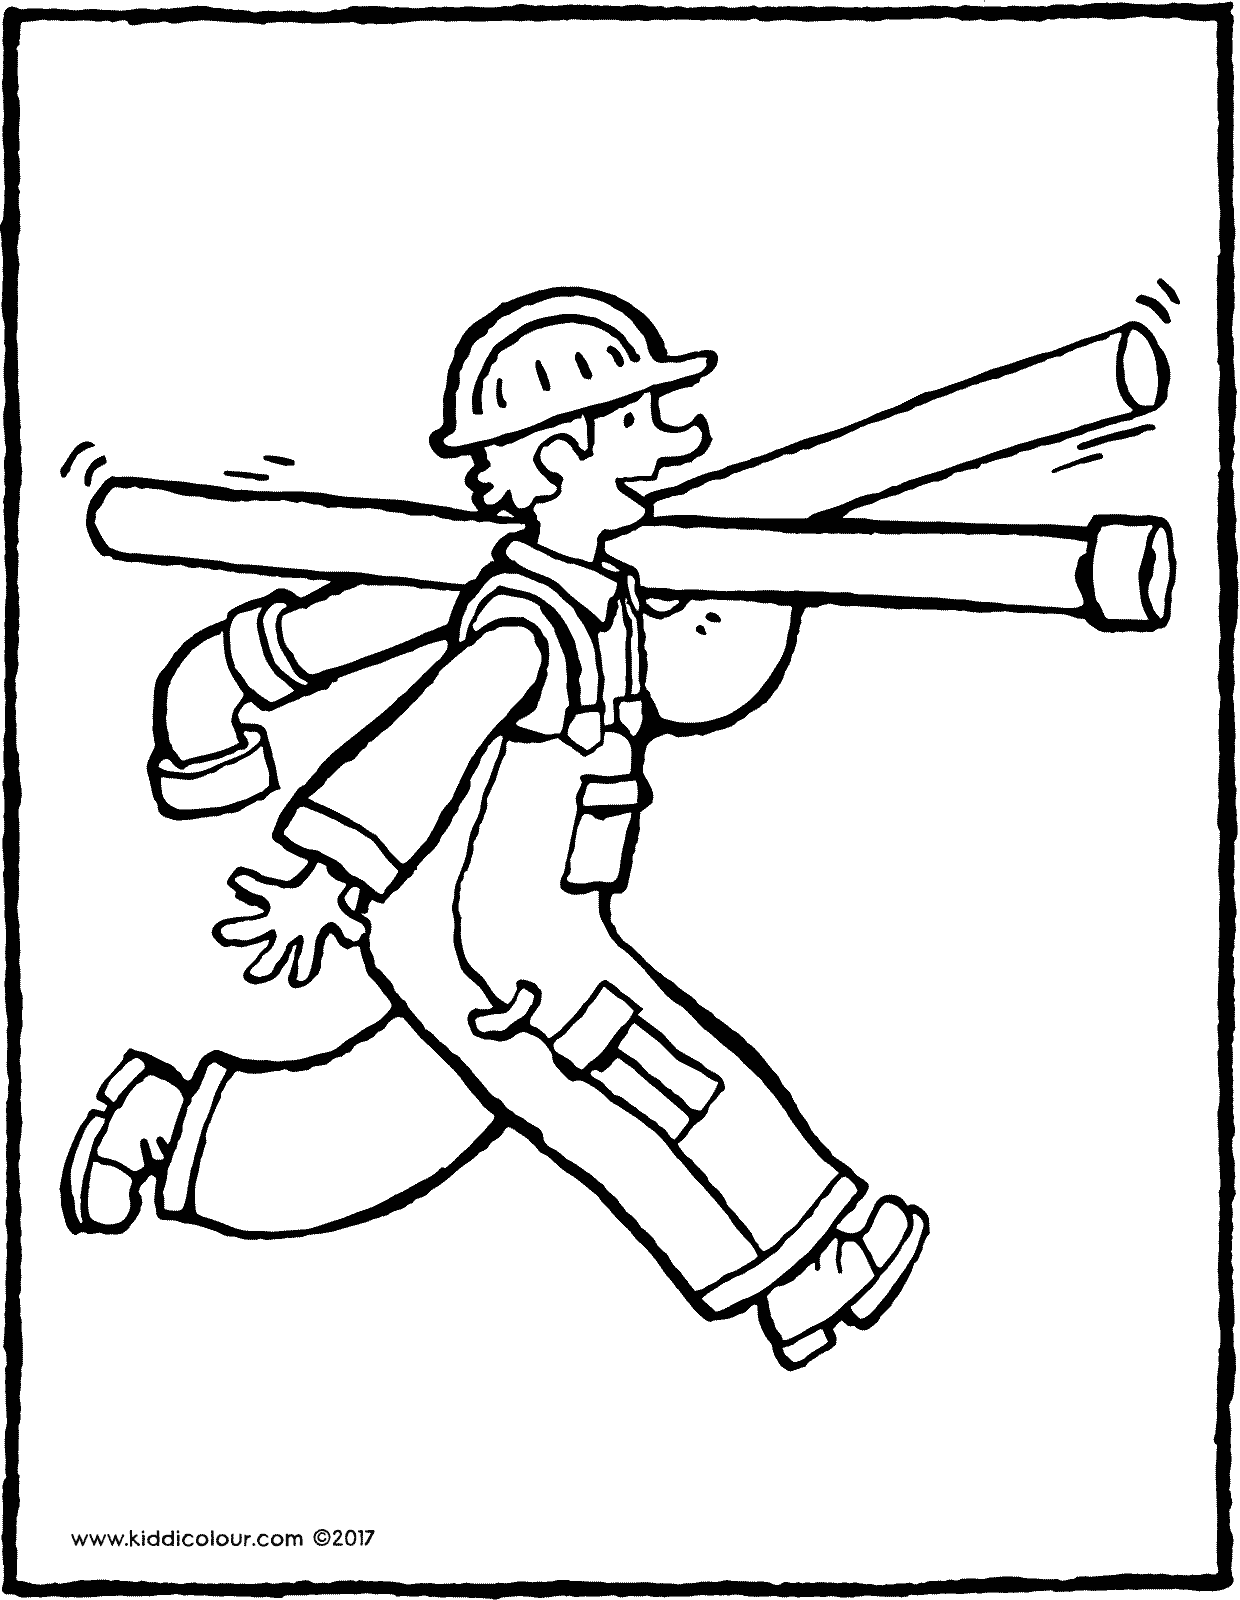 workman colouring page 01V